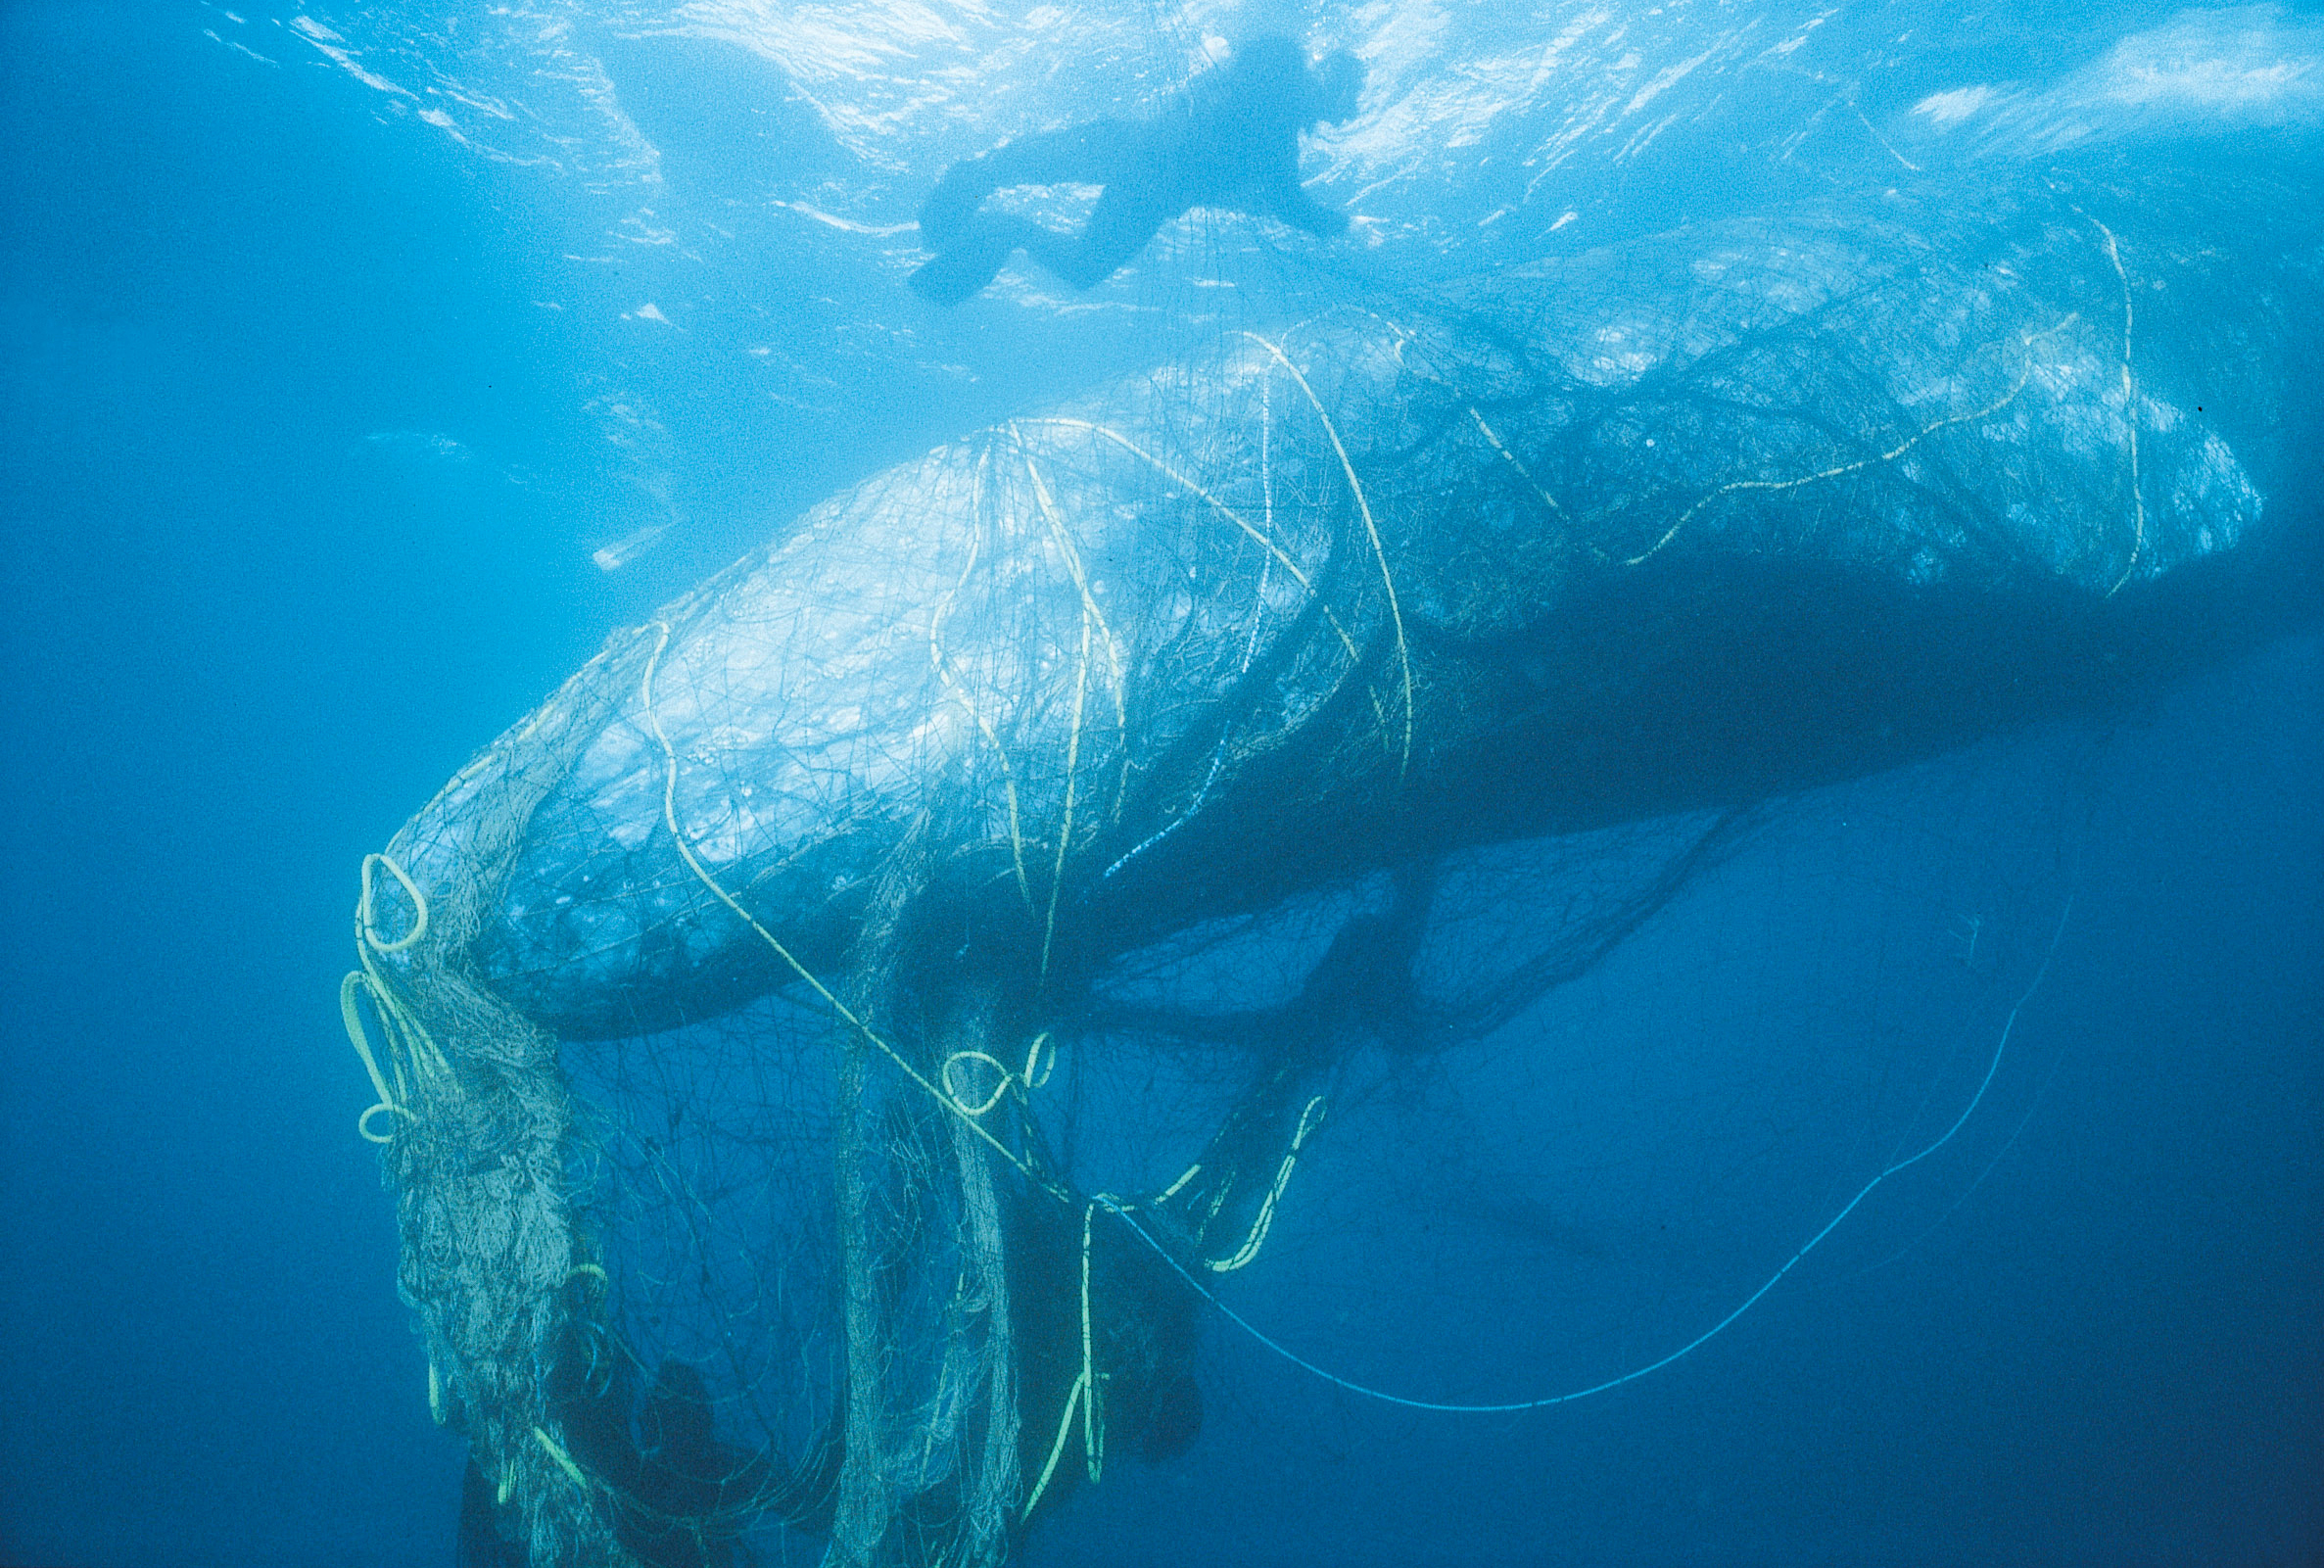 Rescuers untangle a gray whale from ghost net off the coast of California.